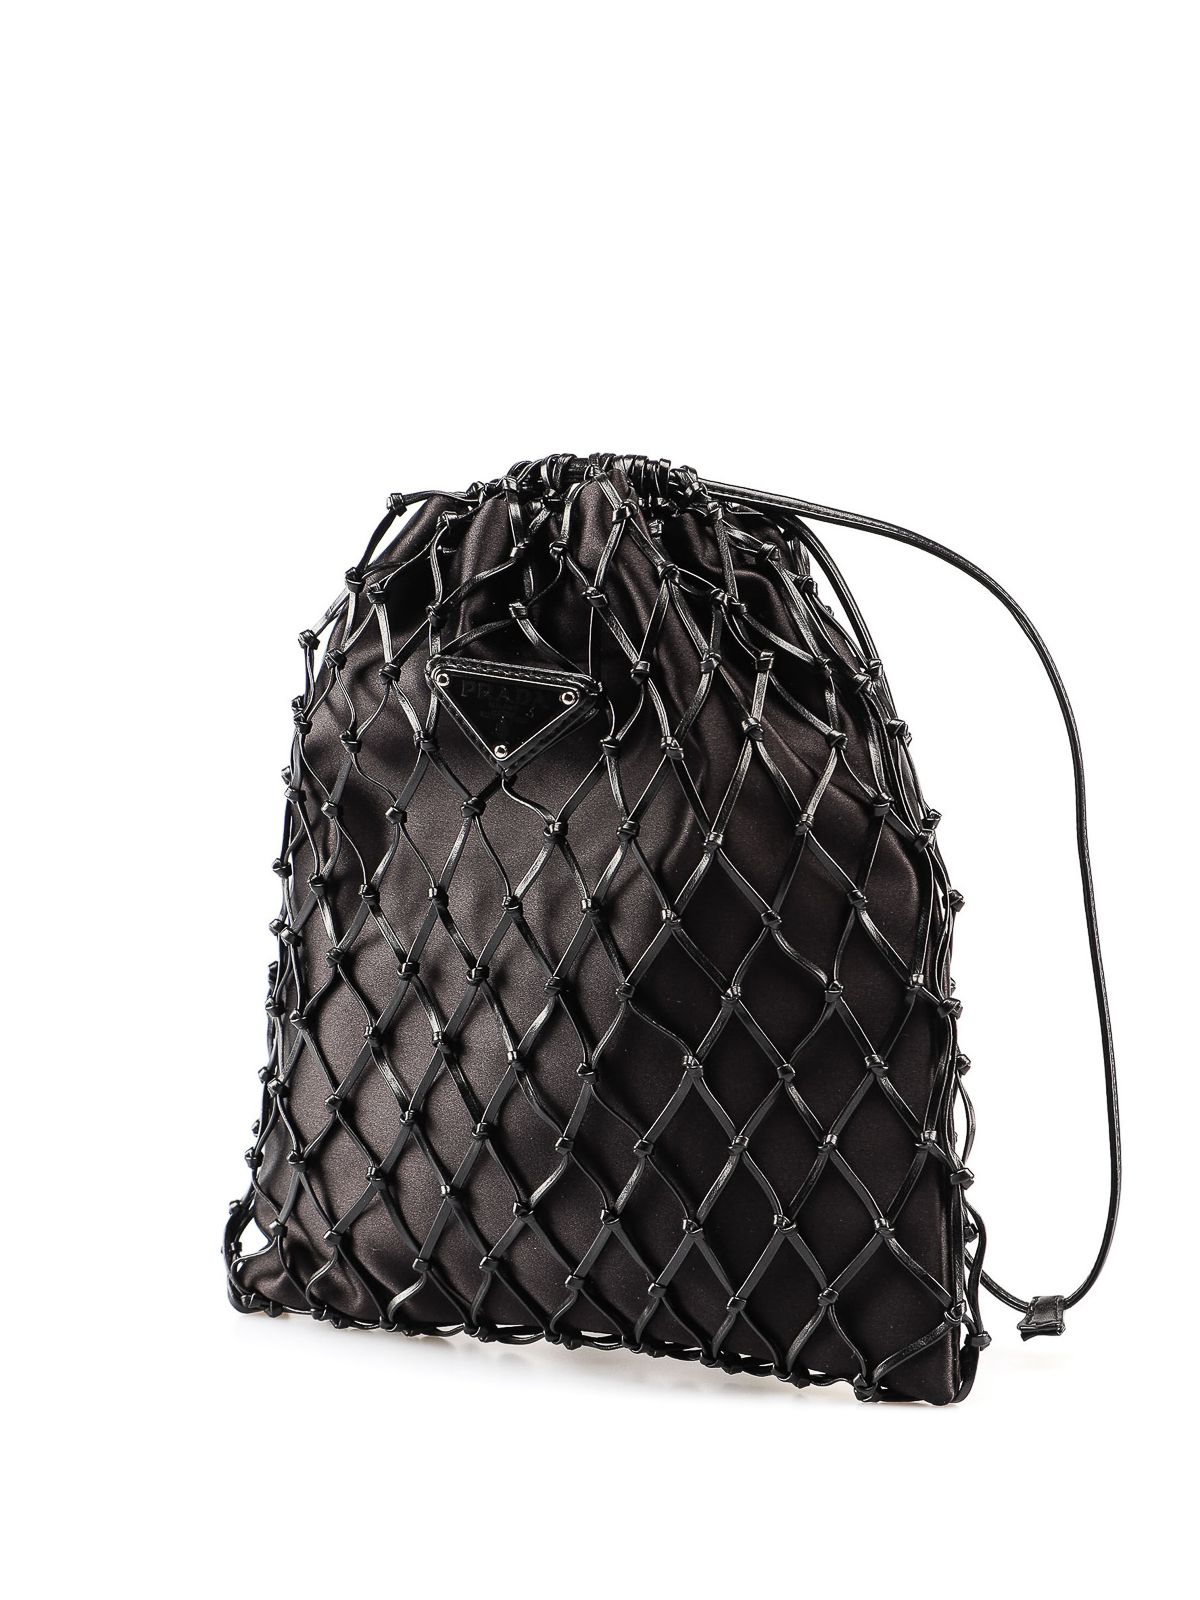 Prada - Black leather mesh and satin bag - Bucket bags - 1BC075AR2 002 4876949b6ee4d